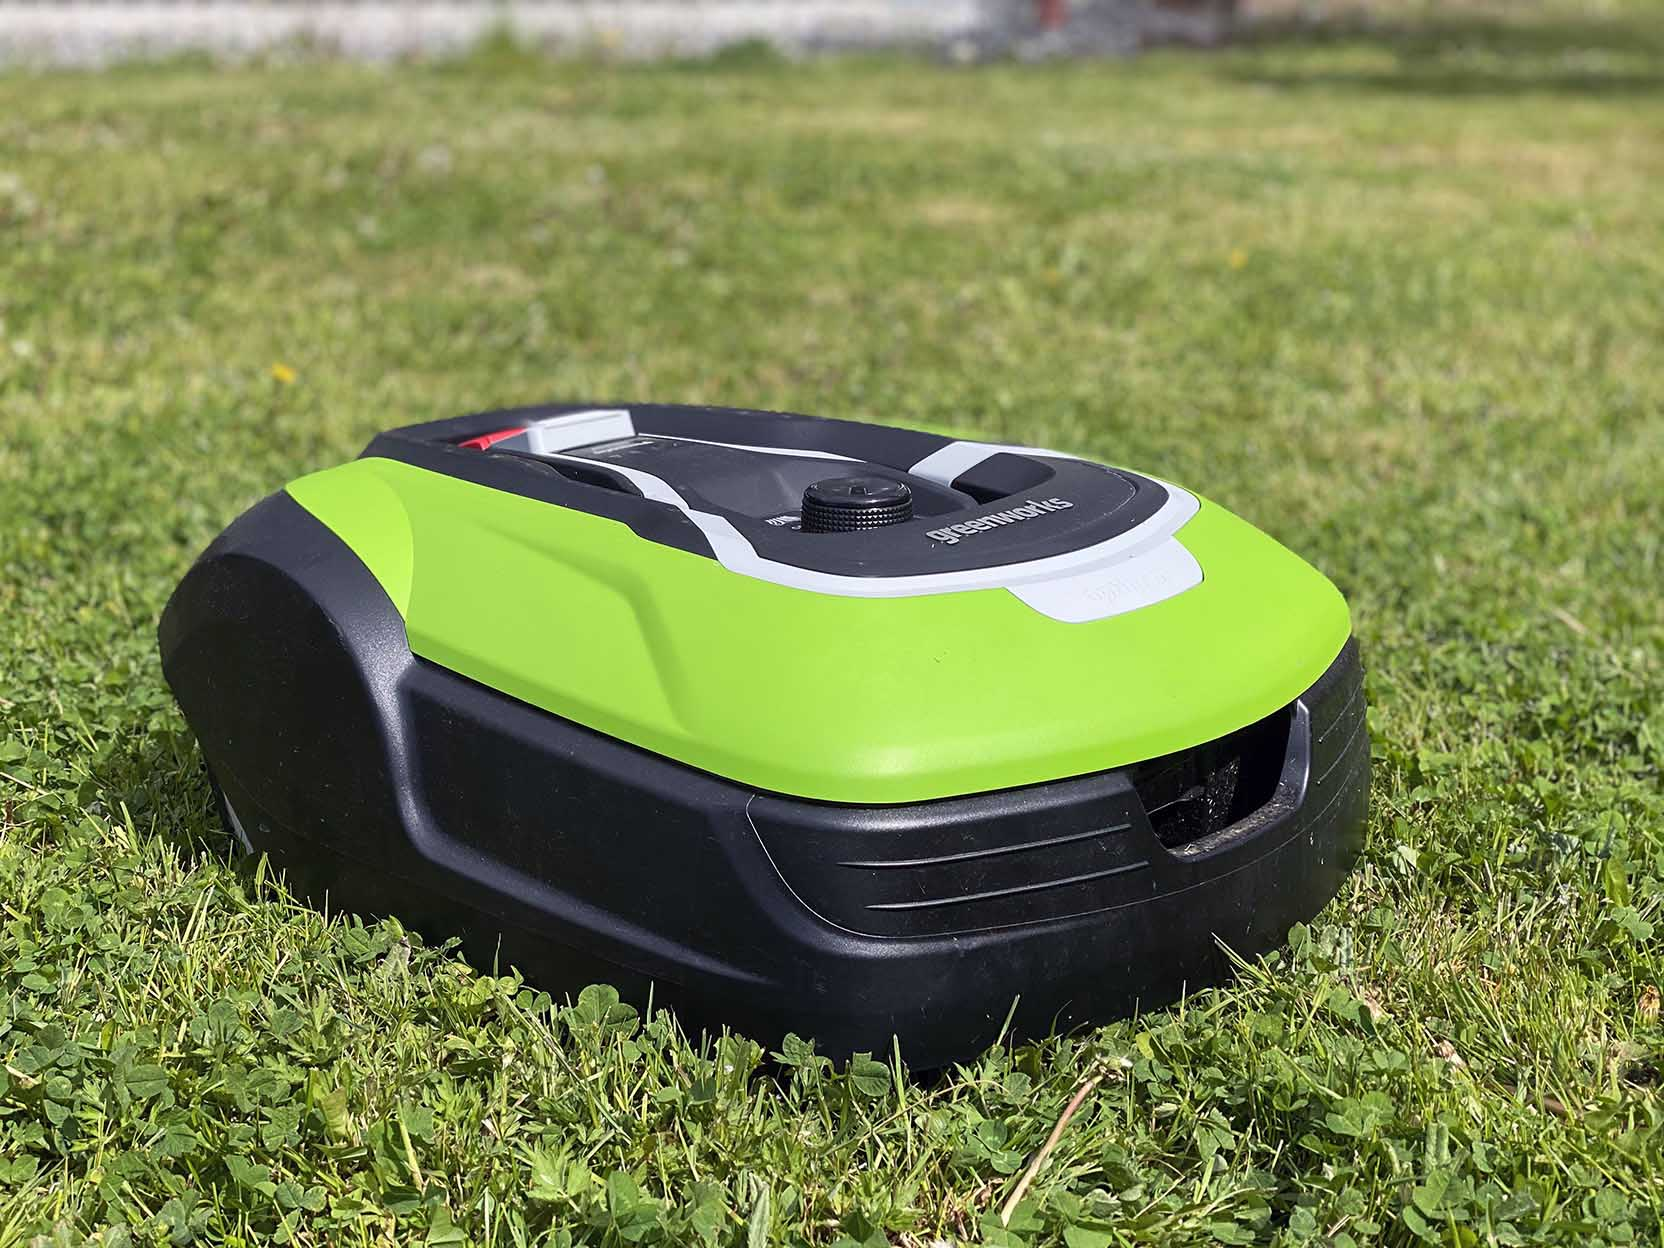 The GreenWorks Optimow 10 supports a guide cable that makes it easy for it to find its way out and home to the charging station even if you have complicated separate areas of lawn.